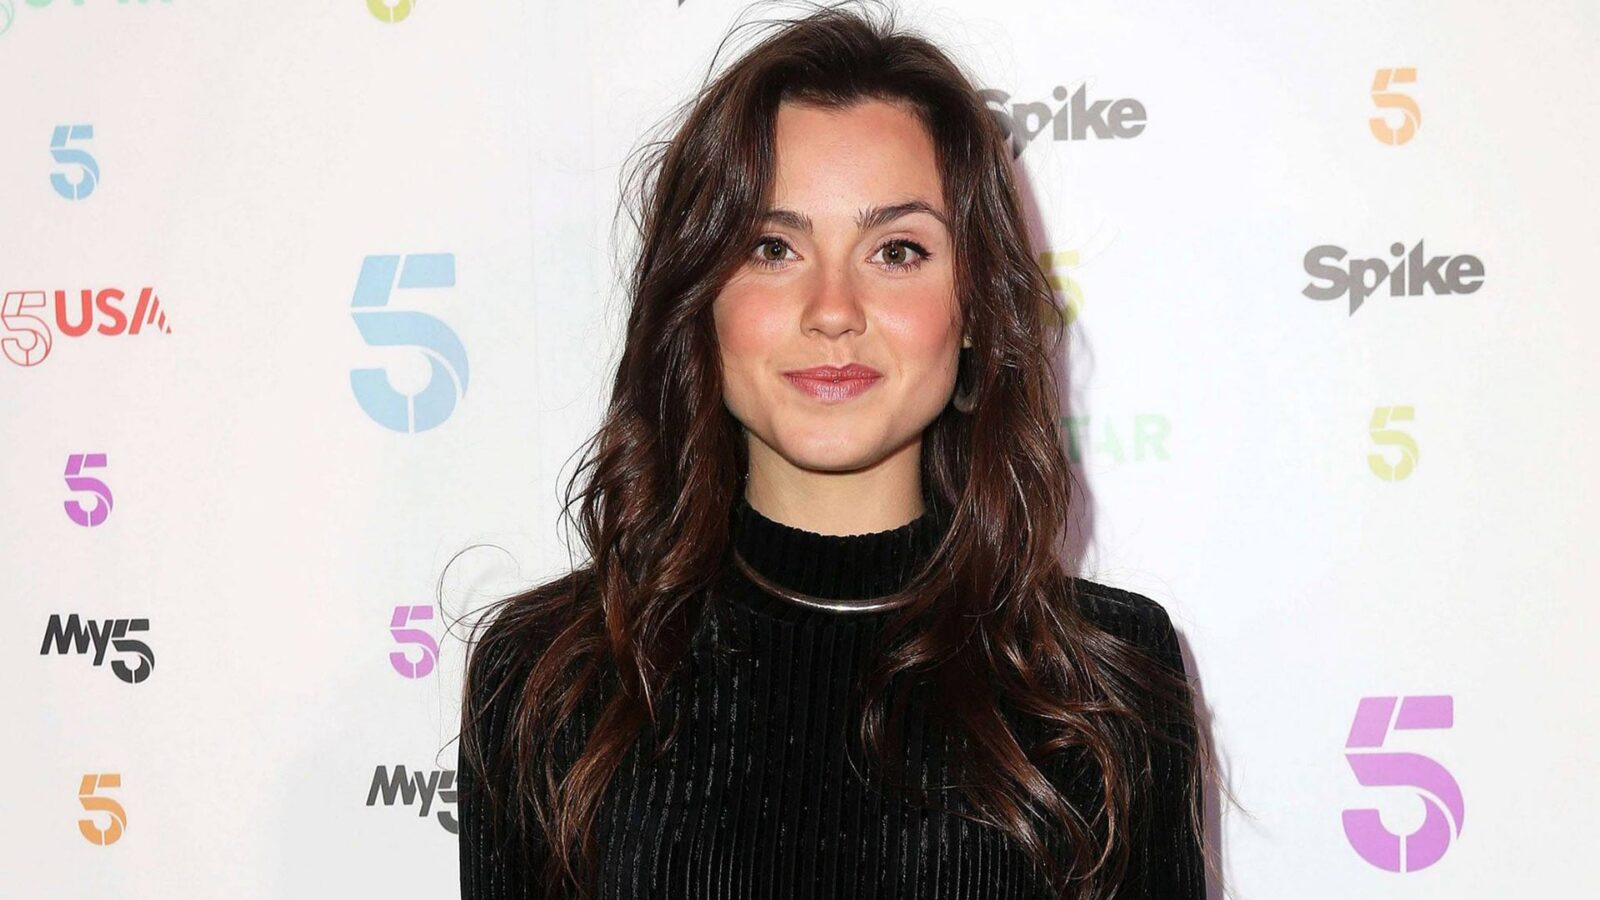 13 Poppy Drayton Hd Wallpapers Free Download